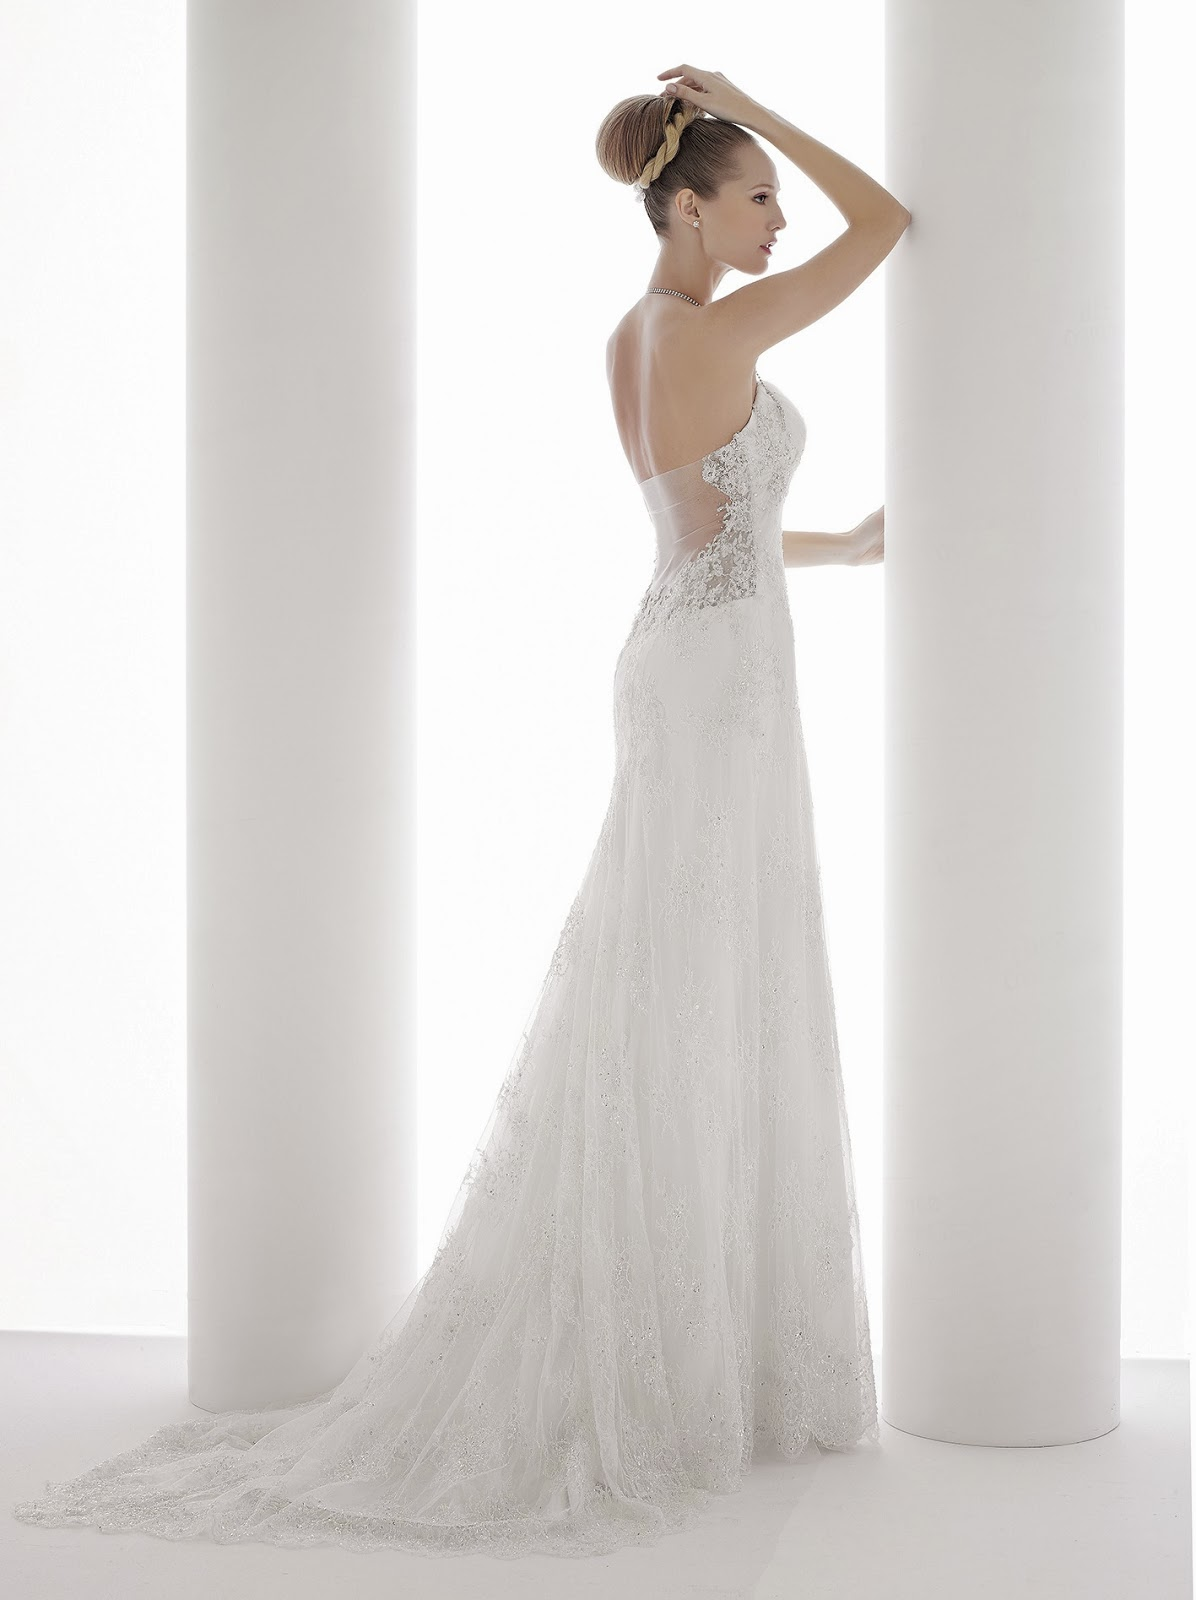 Assia Spose 2014 Spring Bridal Collection